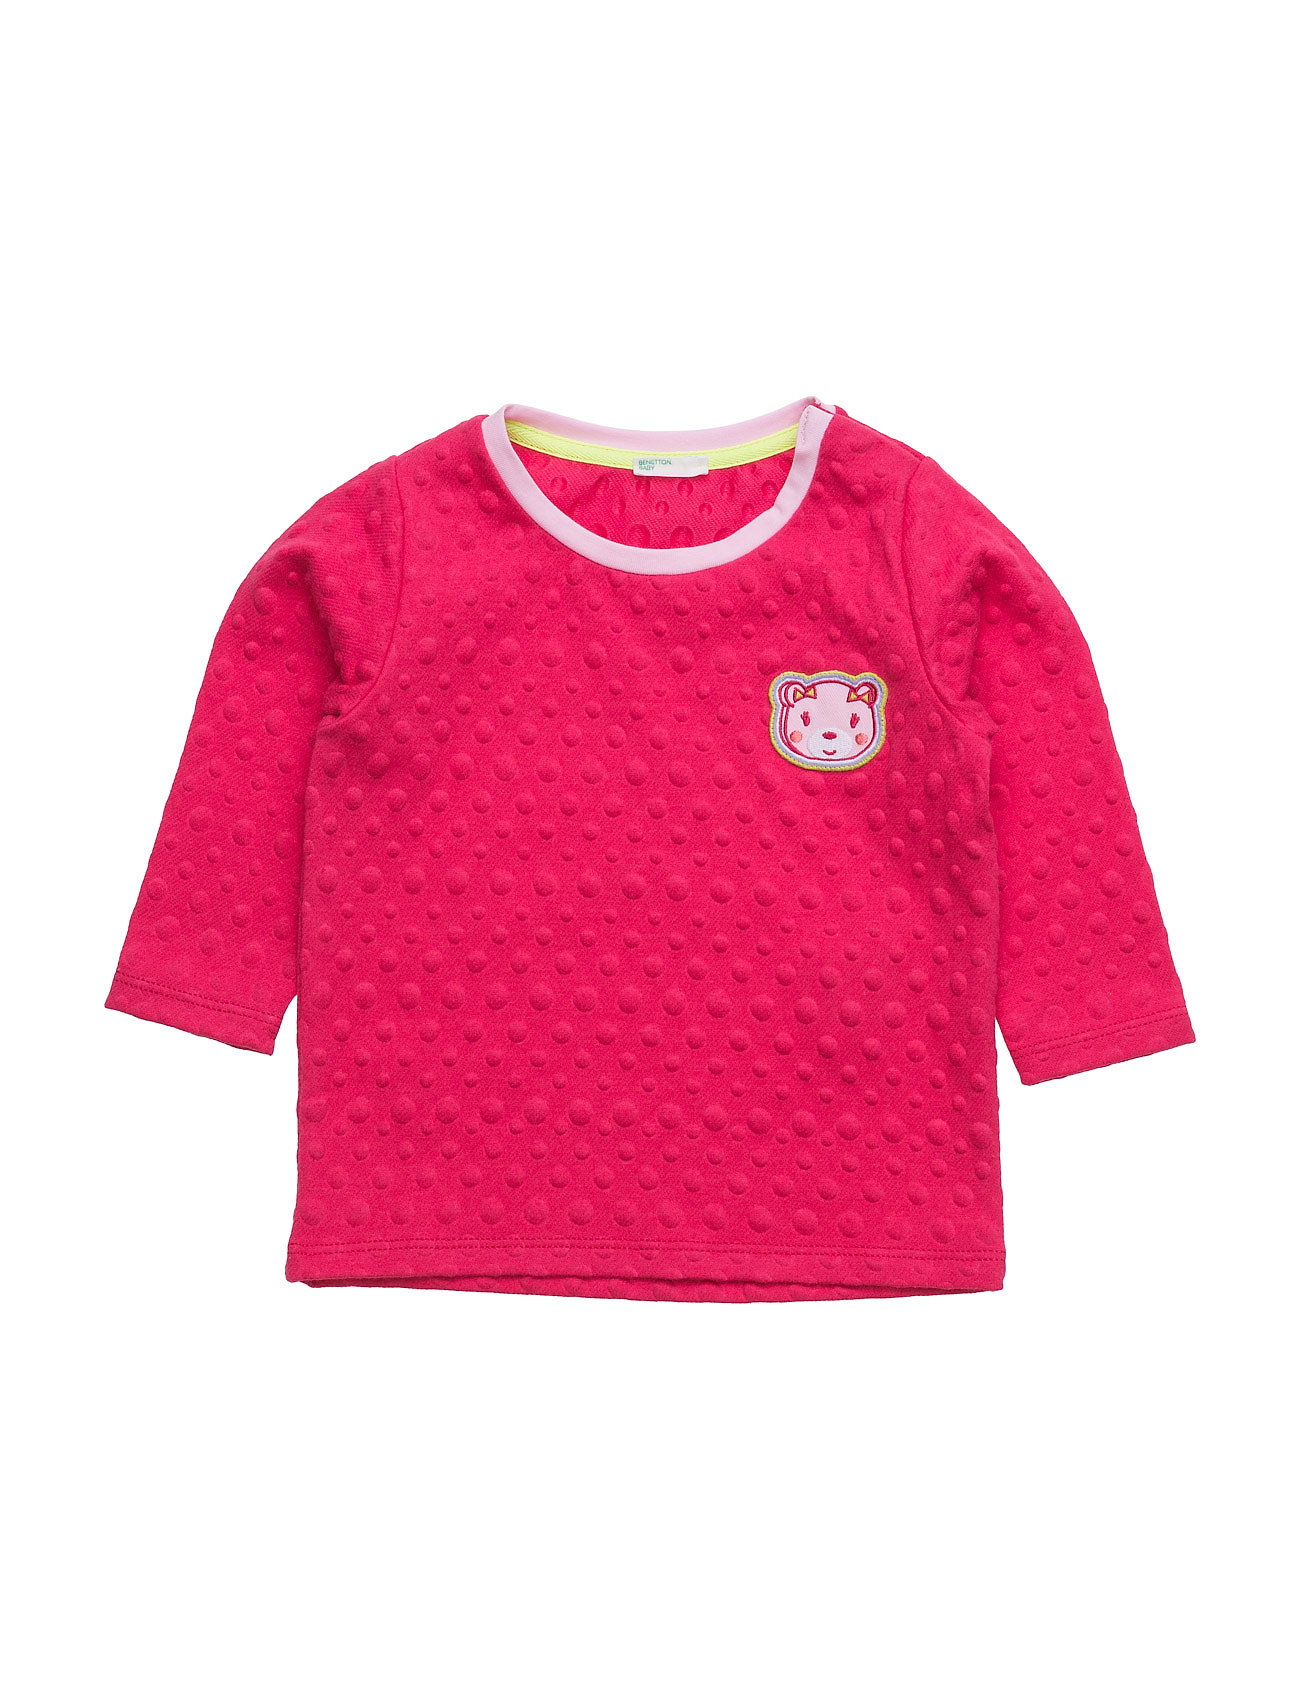 Sweater L/S United Colors of Benetton Sleeve T-Shirts